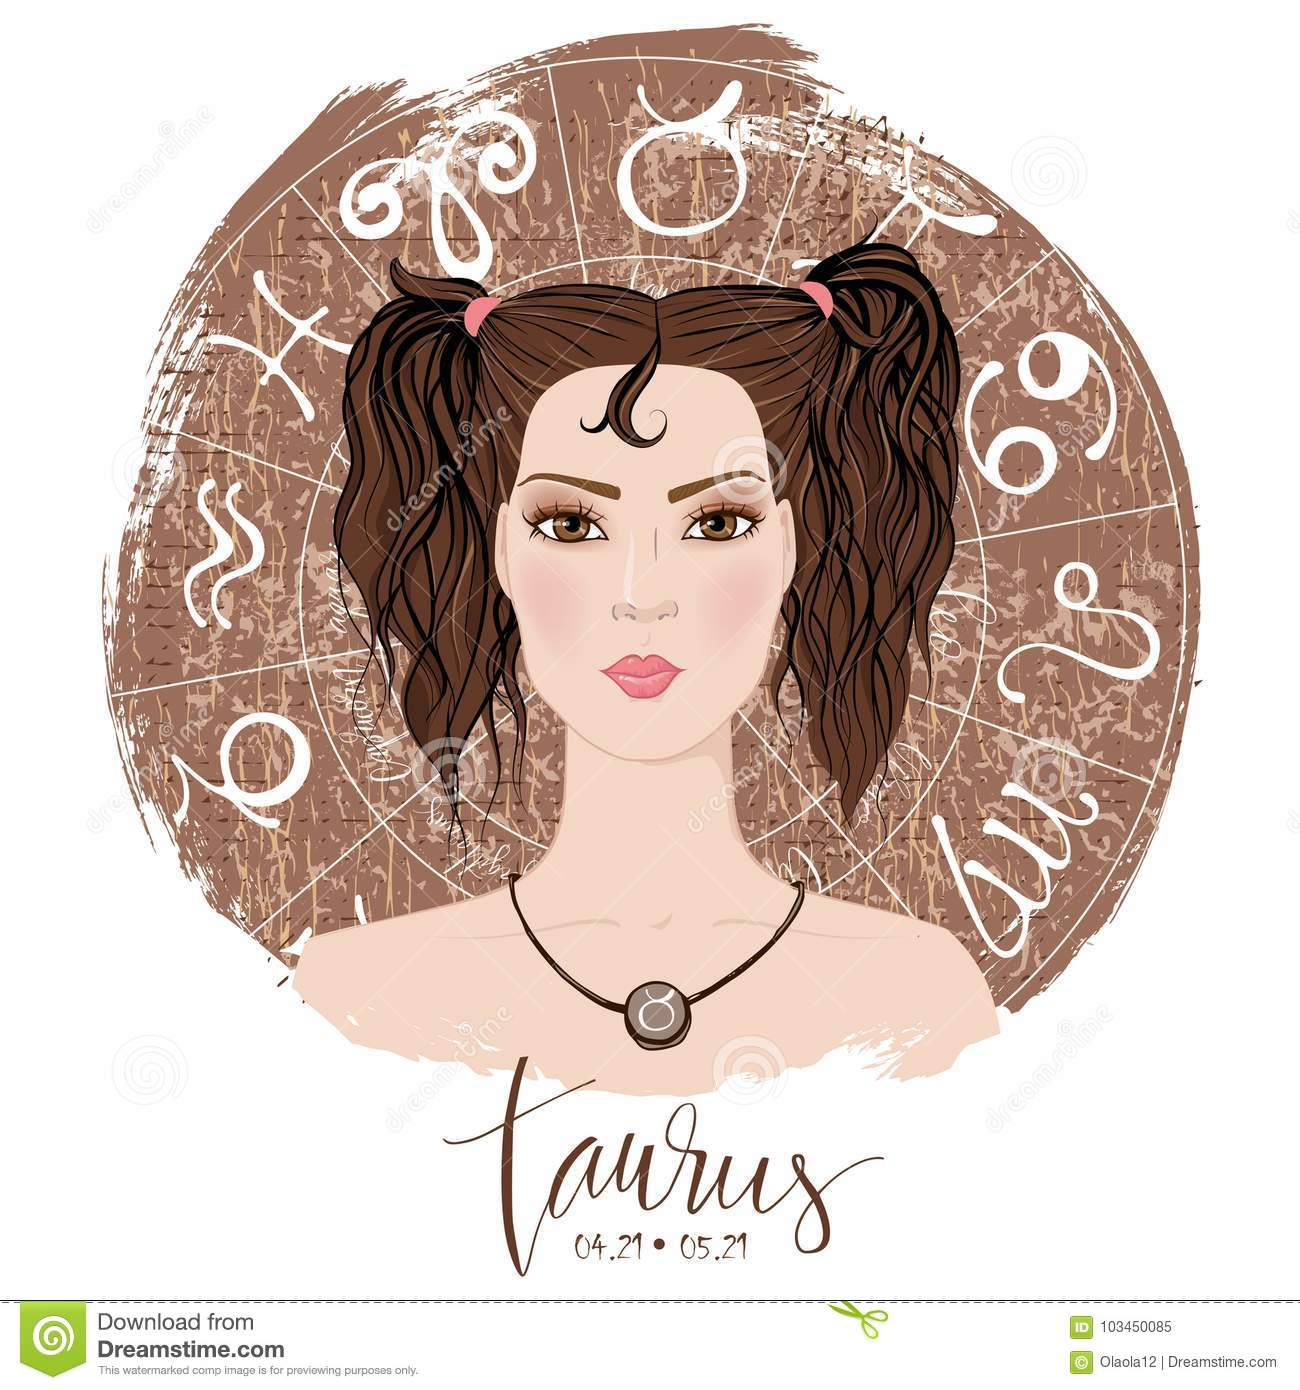 Zodiac Signs Taurus In Image Of Beauty Girl  Stock Vector